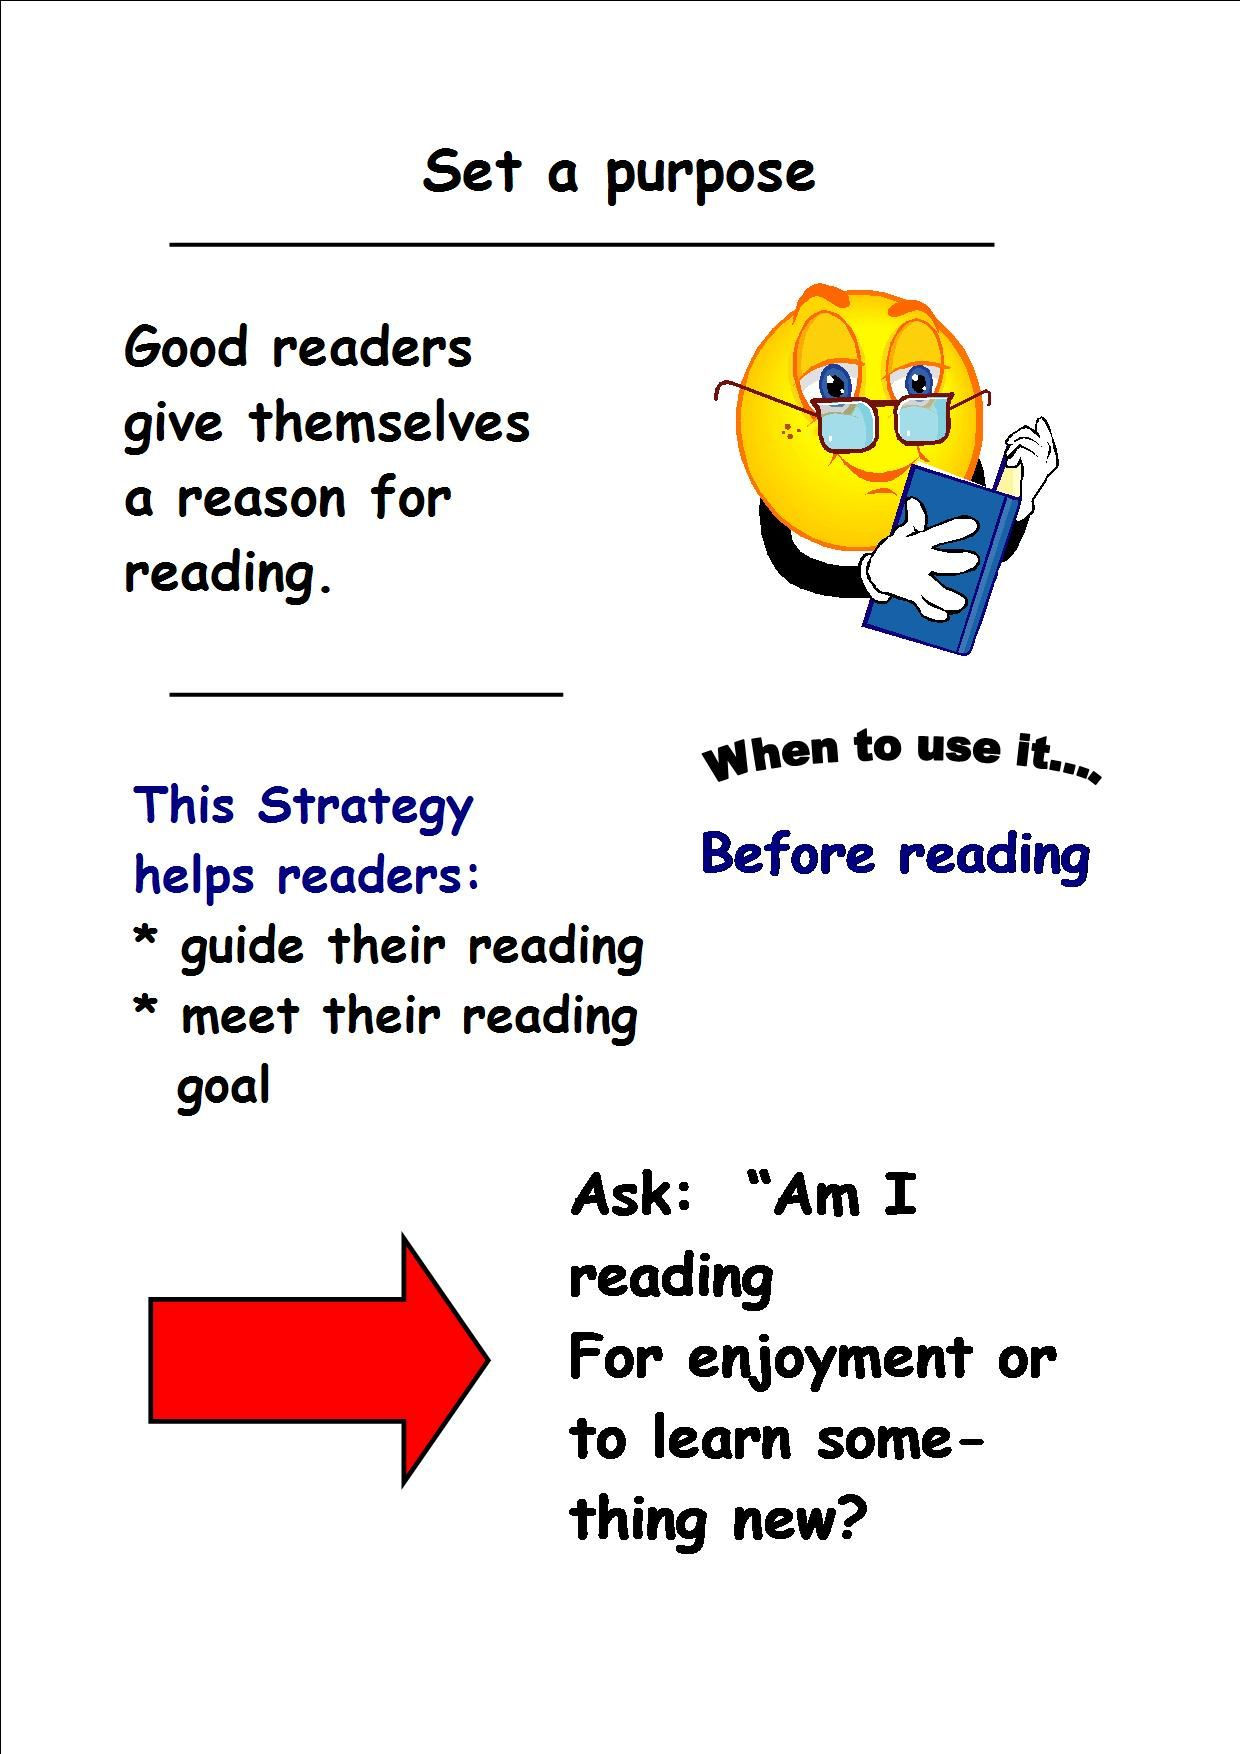 Essential Strategies For Children Developing Reading Comprehension Set A Purpose For R Reading Strategies Reading Comprehension Strategies Reading Writing Reading strategies for esl students